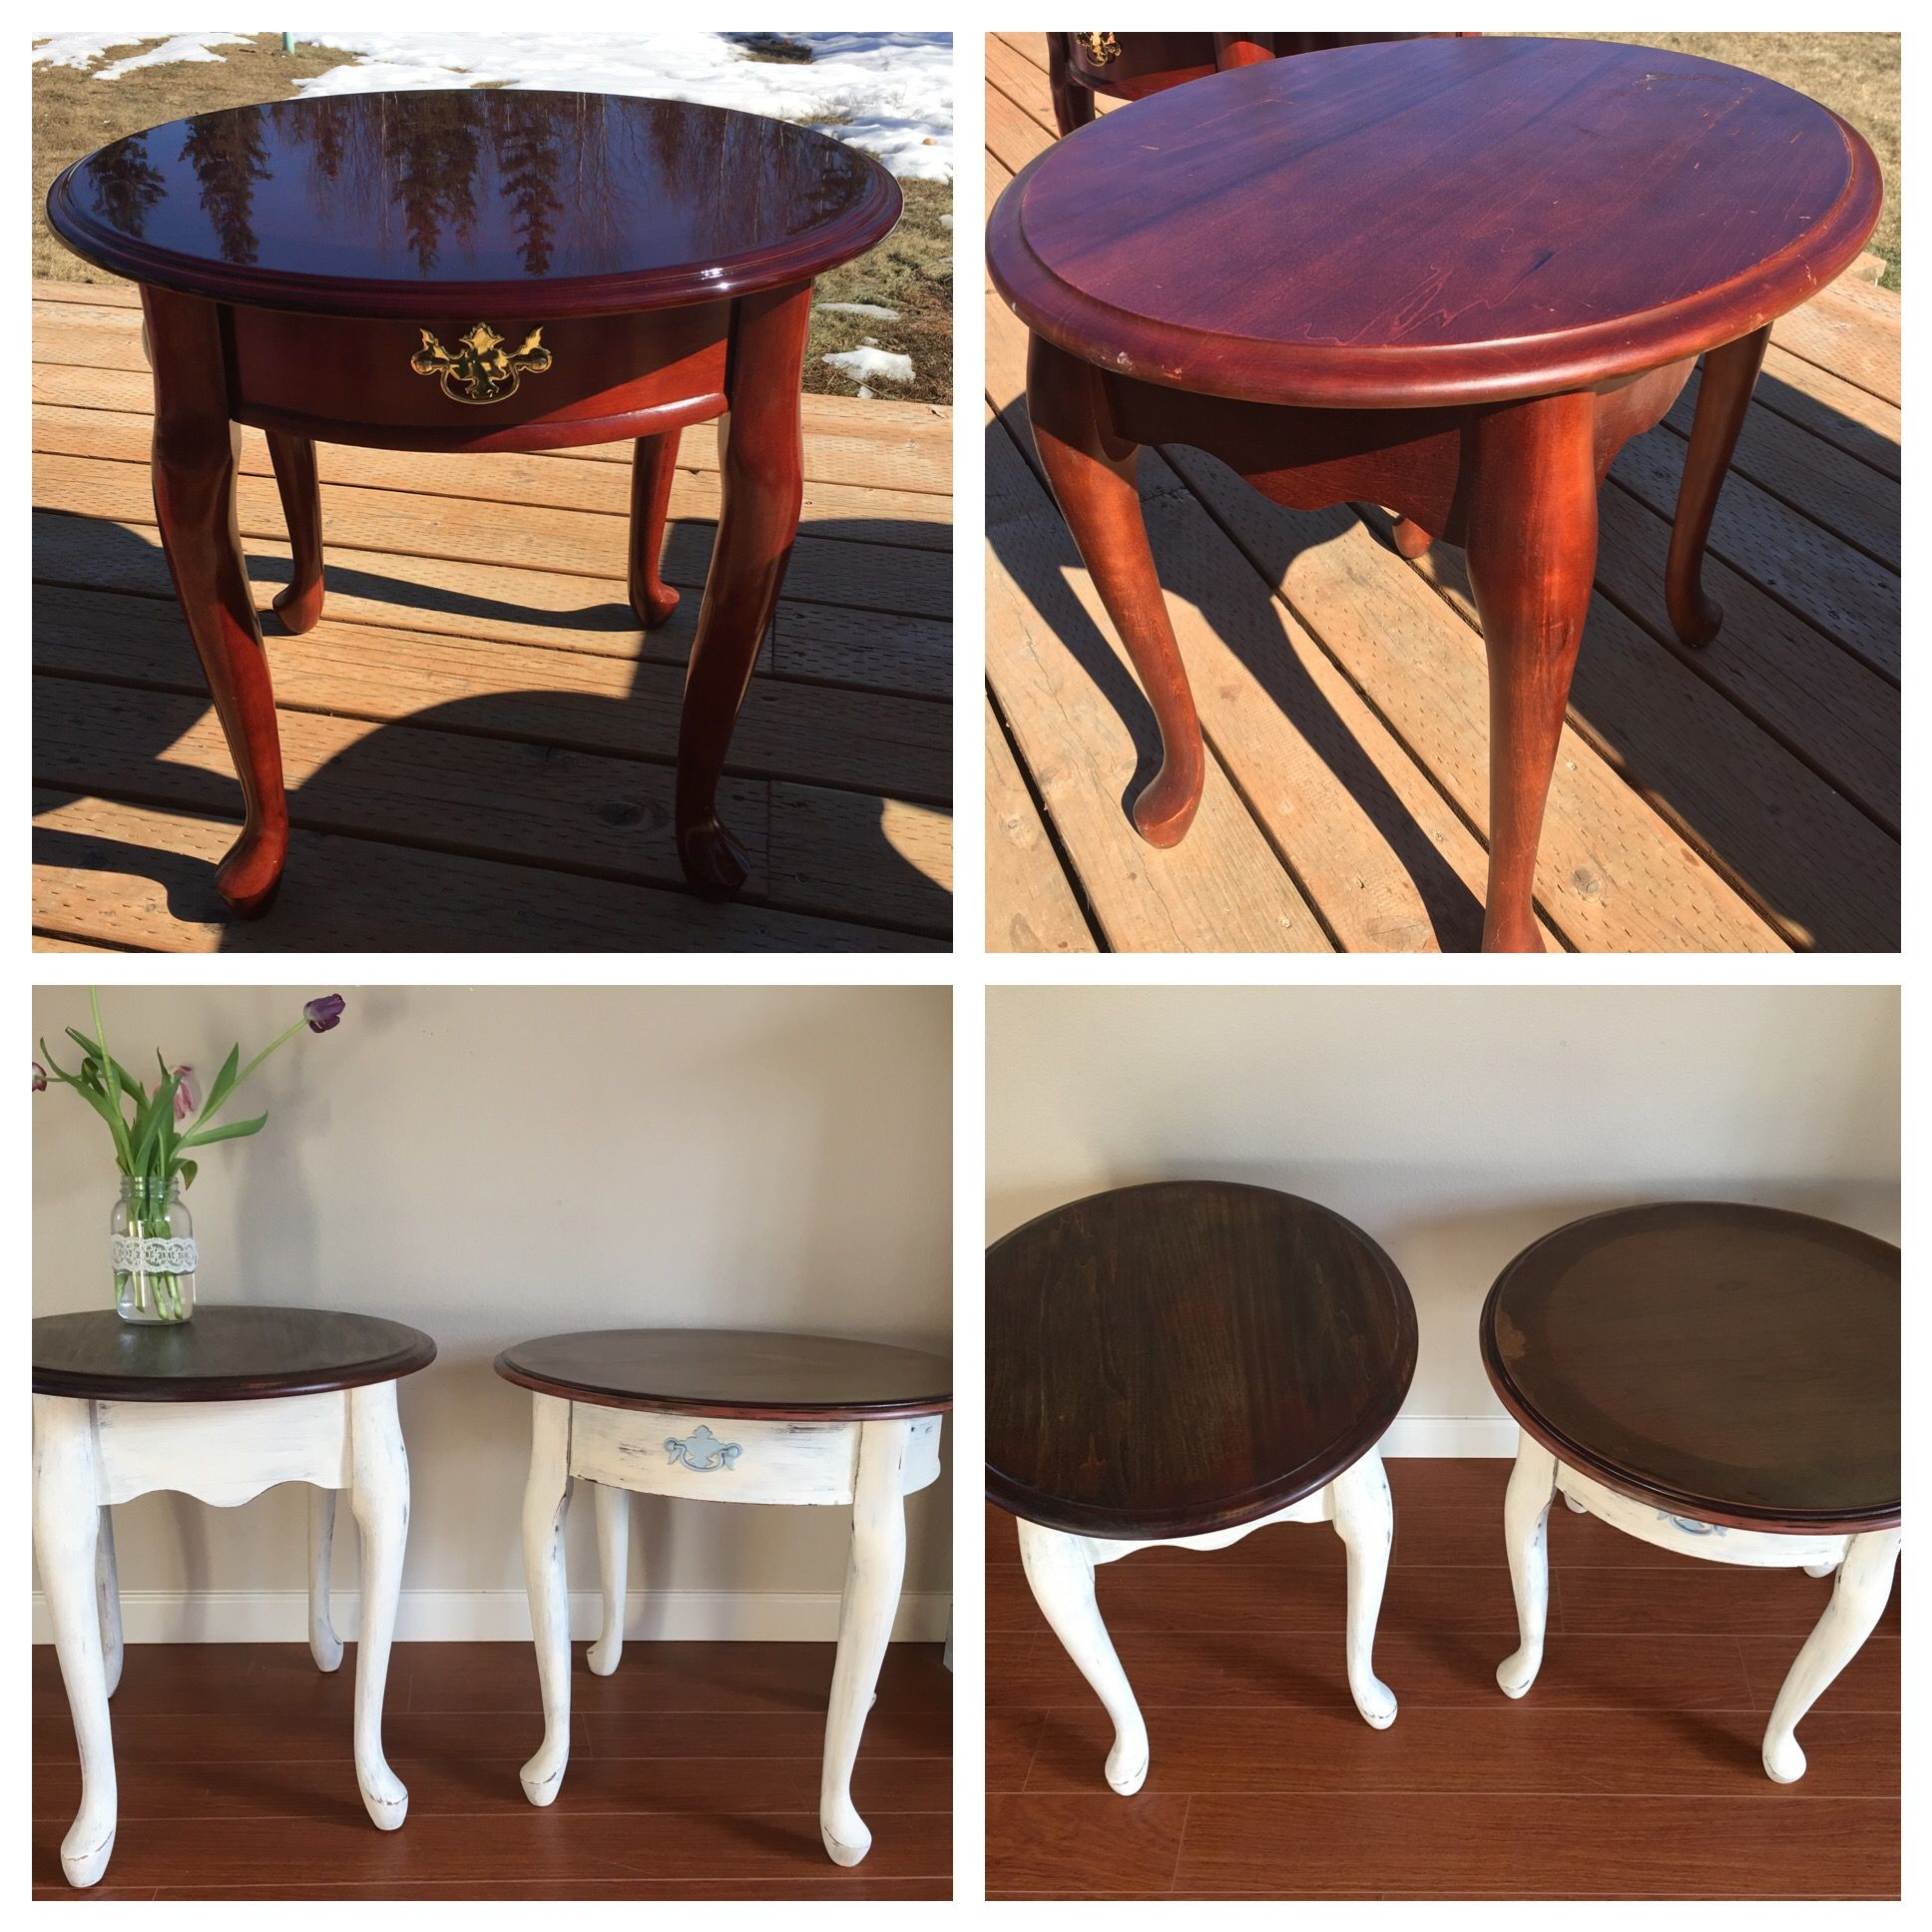 French side tables chalk painted and stained Furniture